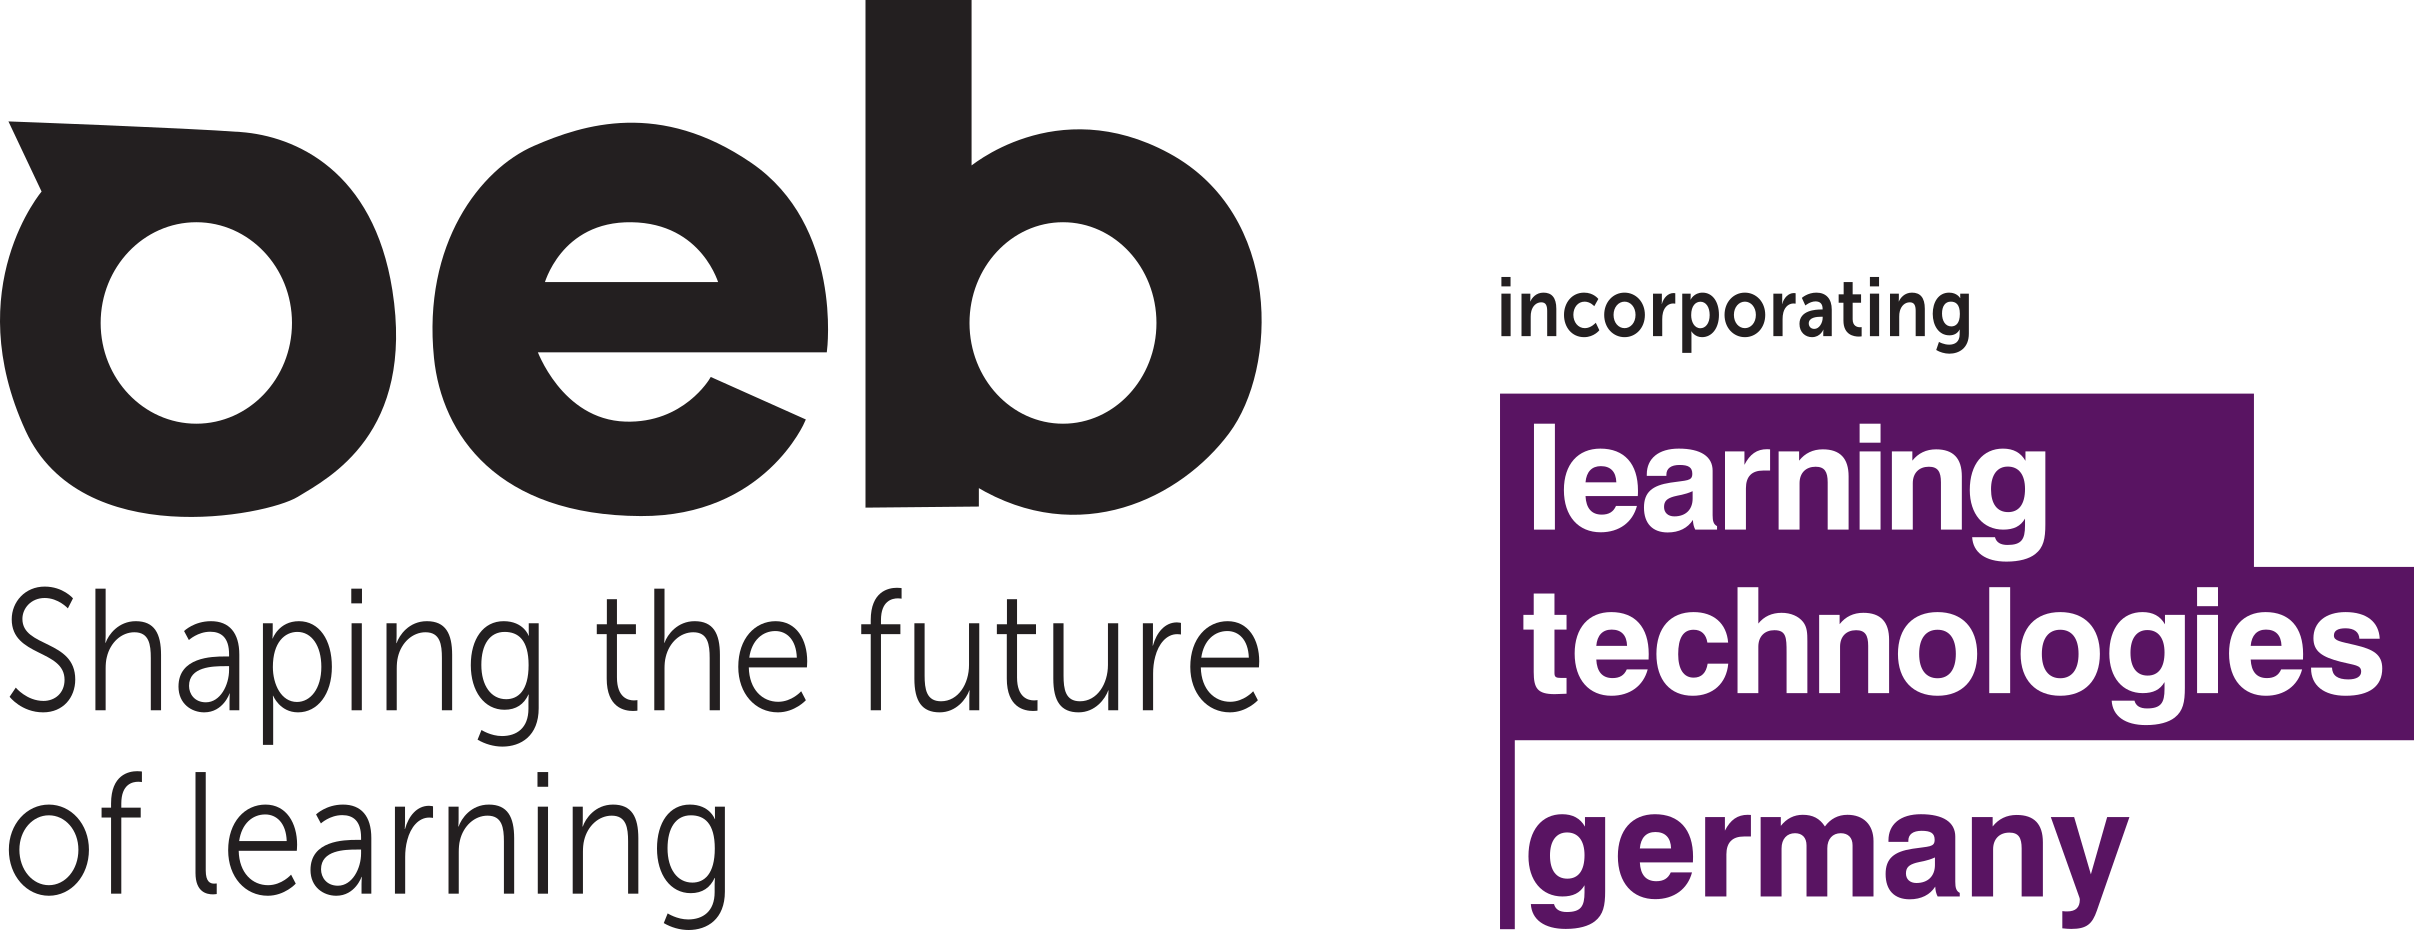 oeb incorporating learning technologies germany